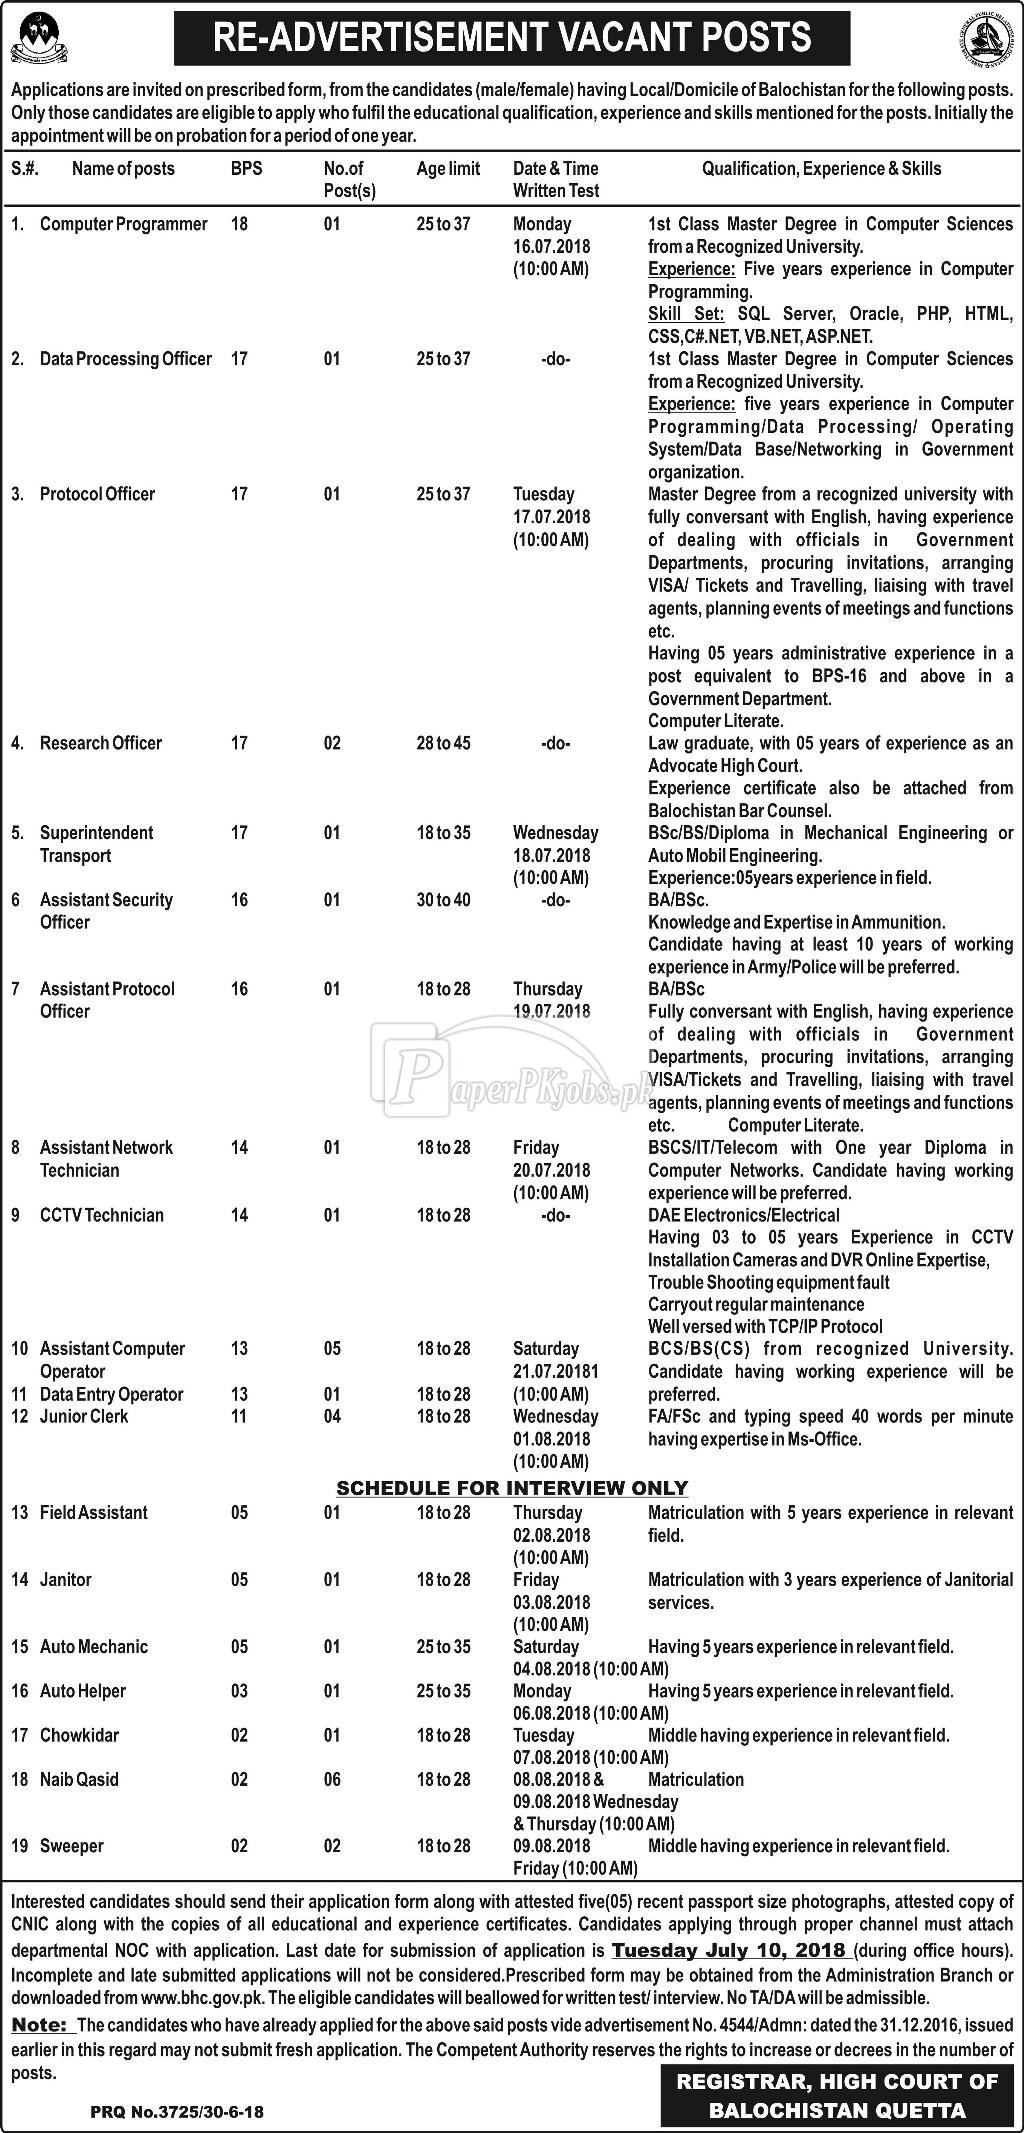 High Court of Balochistan Quetta Jobs 2018